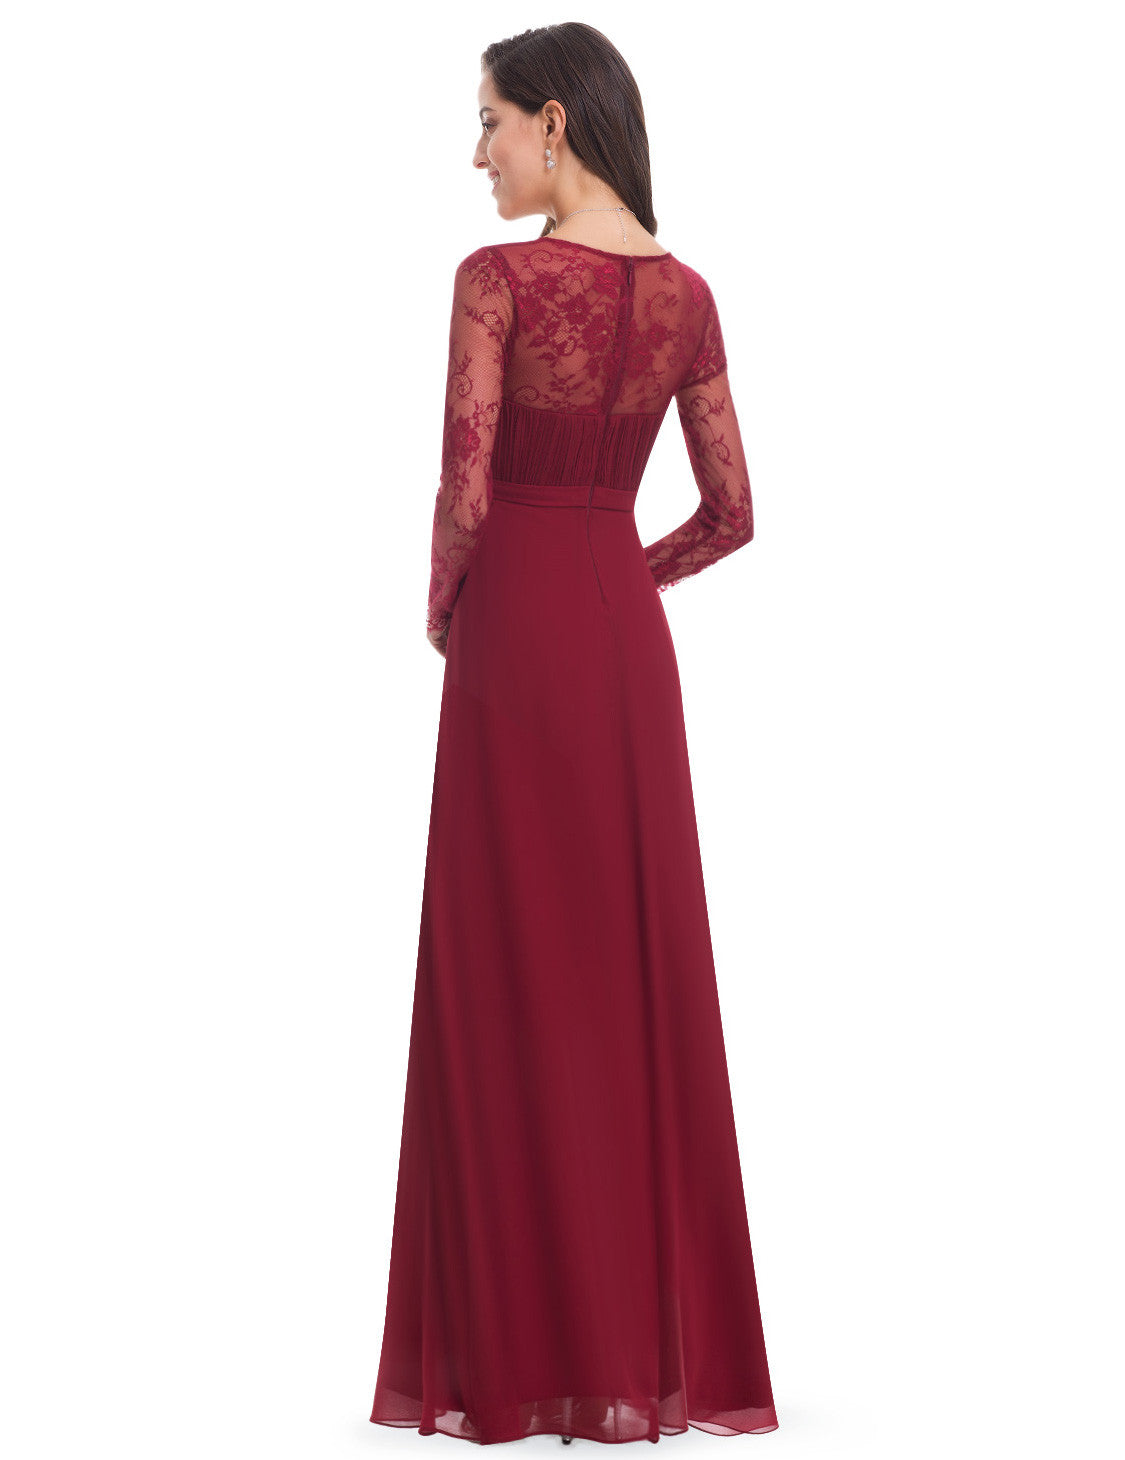 Obeige Burgundy Elegant V-neck Long Sleeve Evening Dress - O'beige